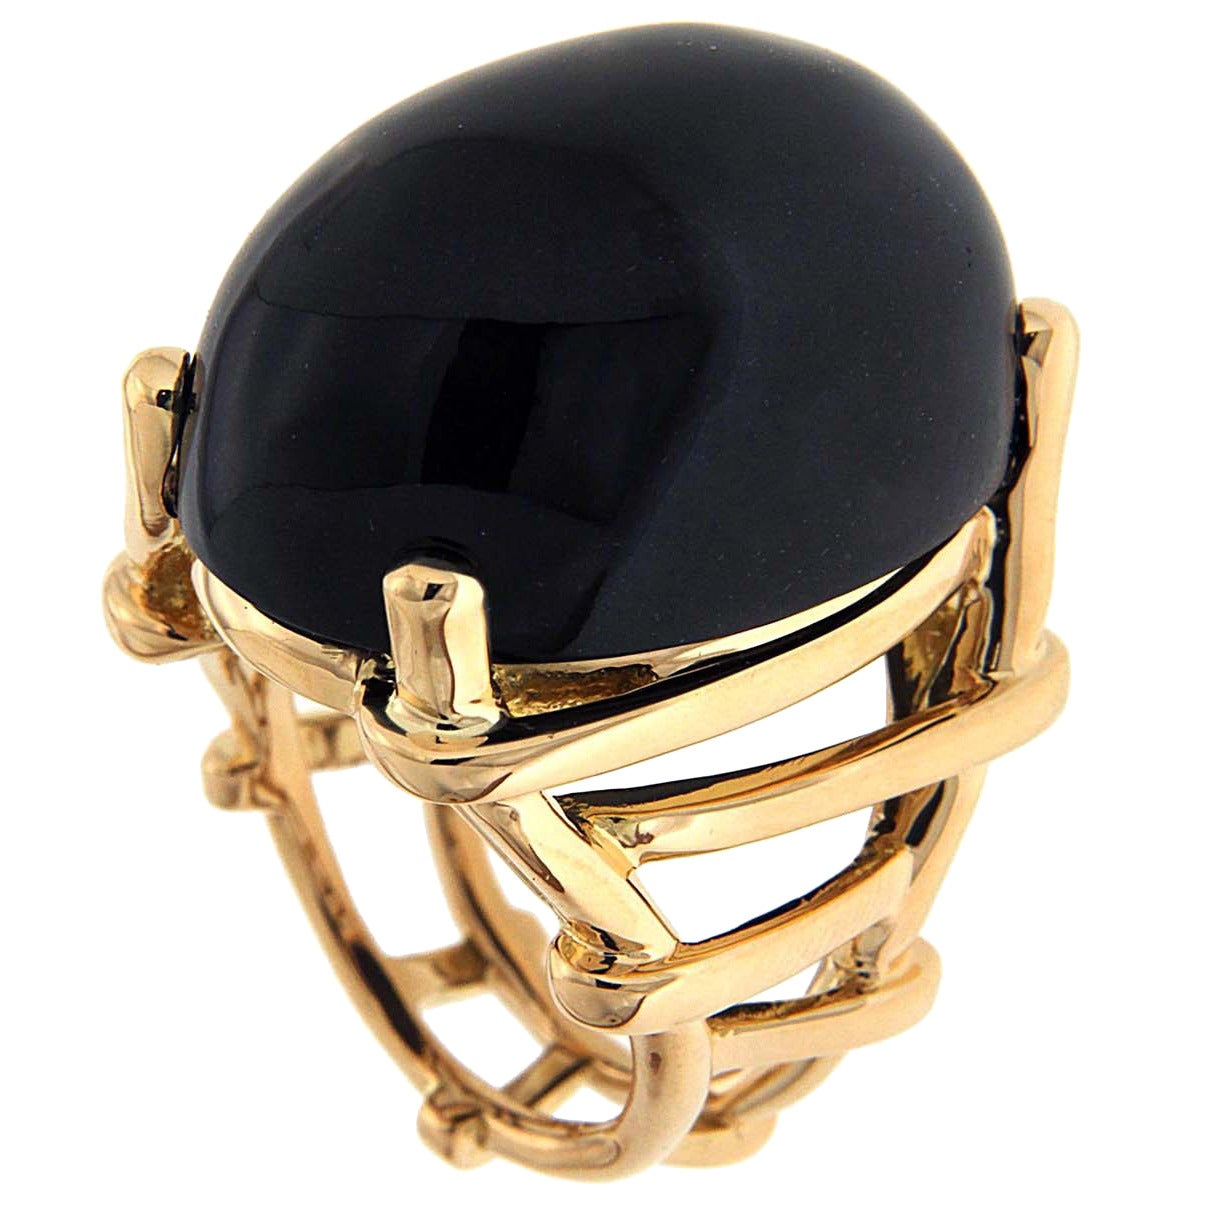 Oval Cabochon Black Jade Gold Dome Trellis Ring 1